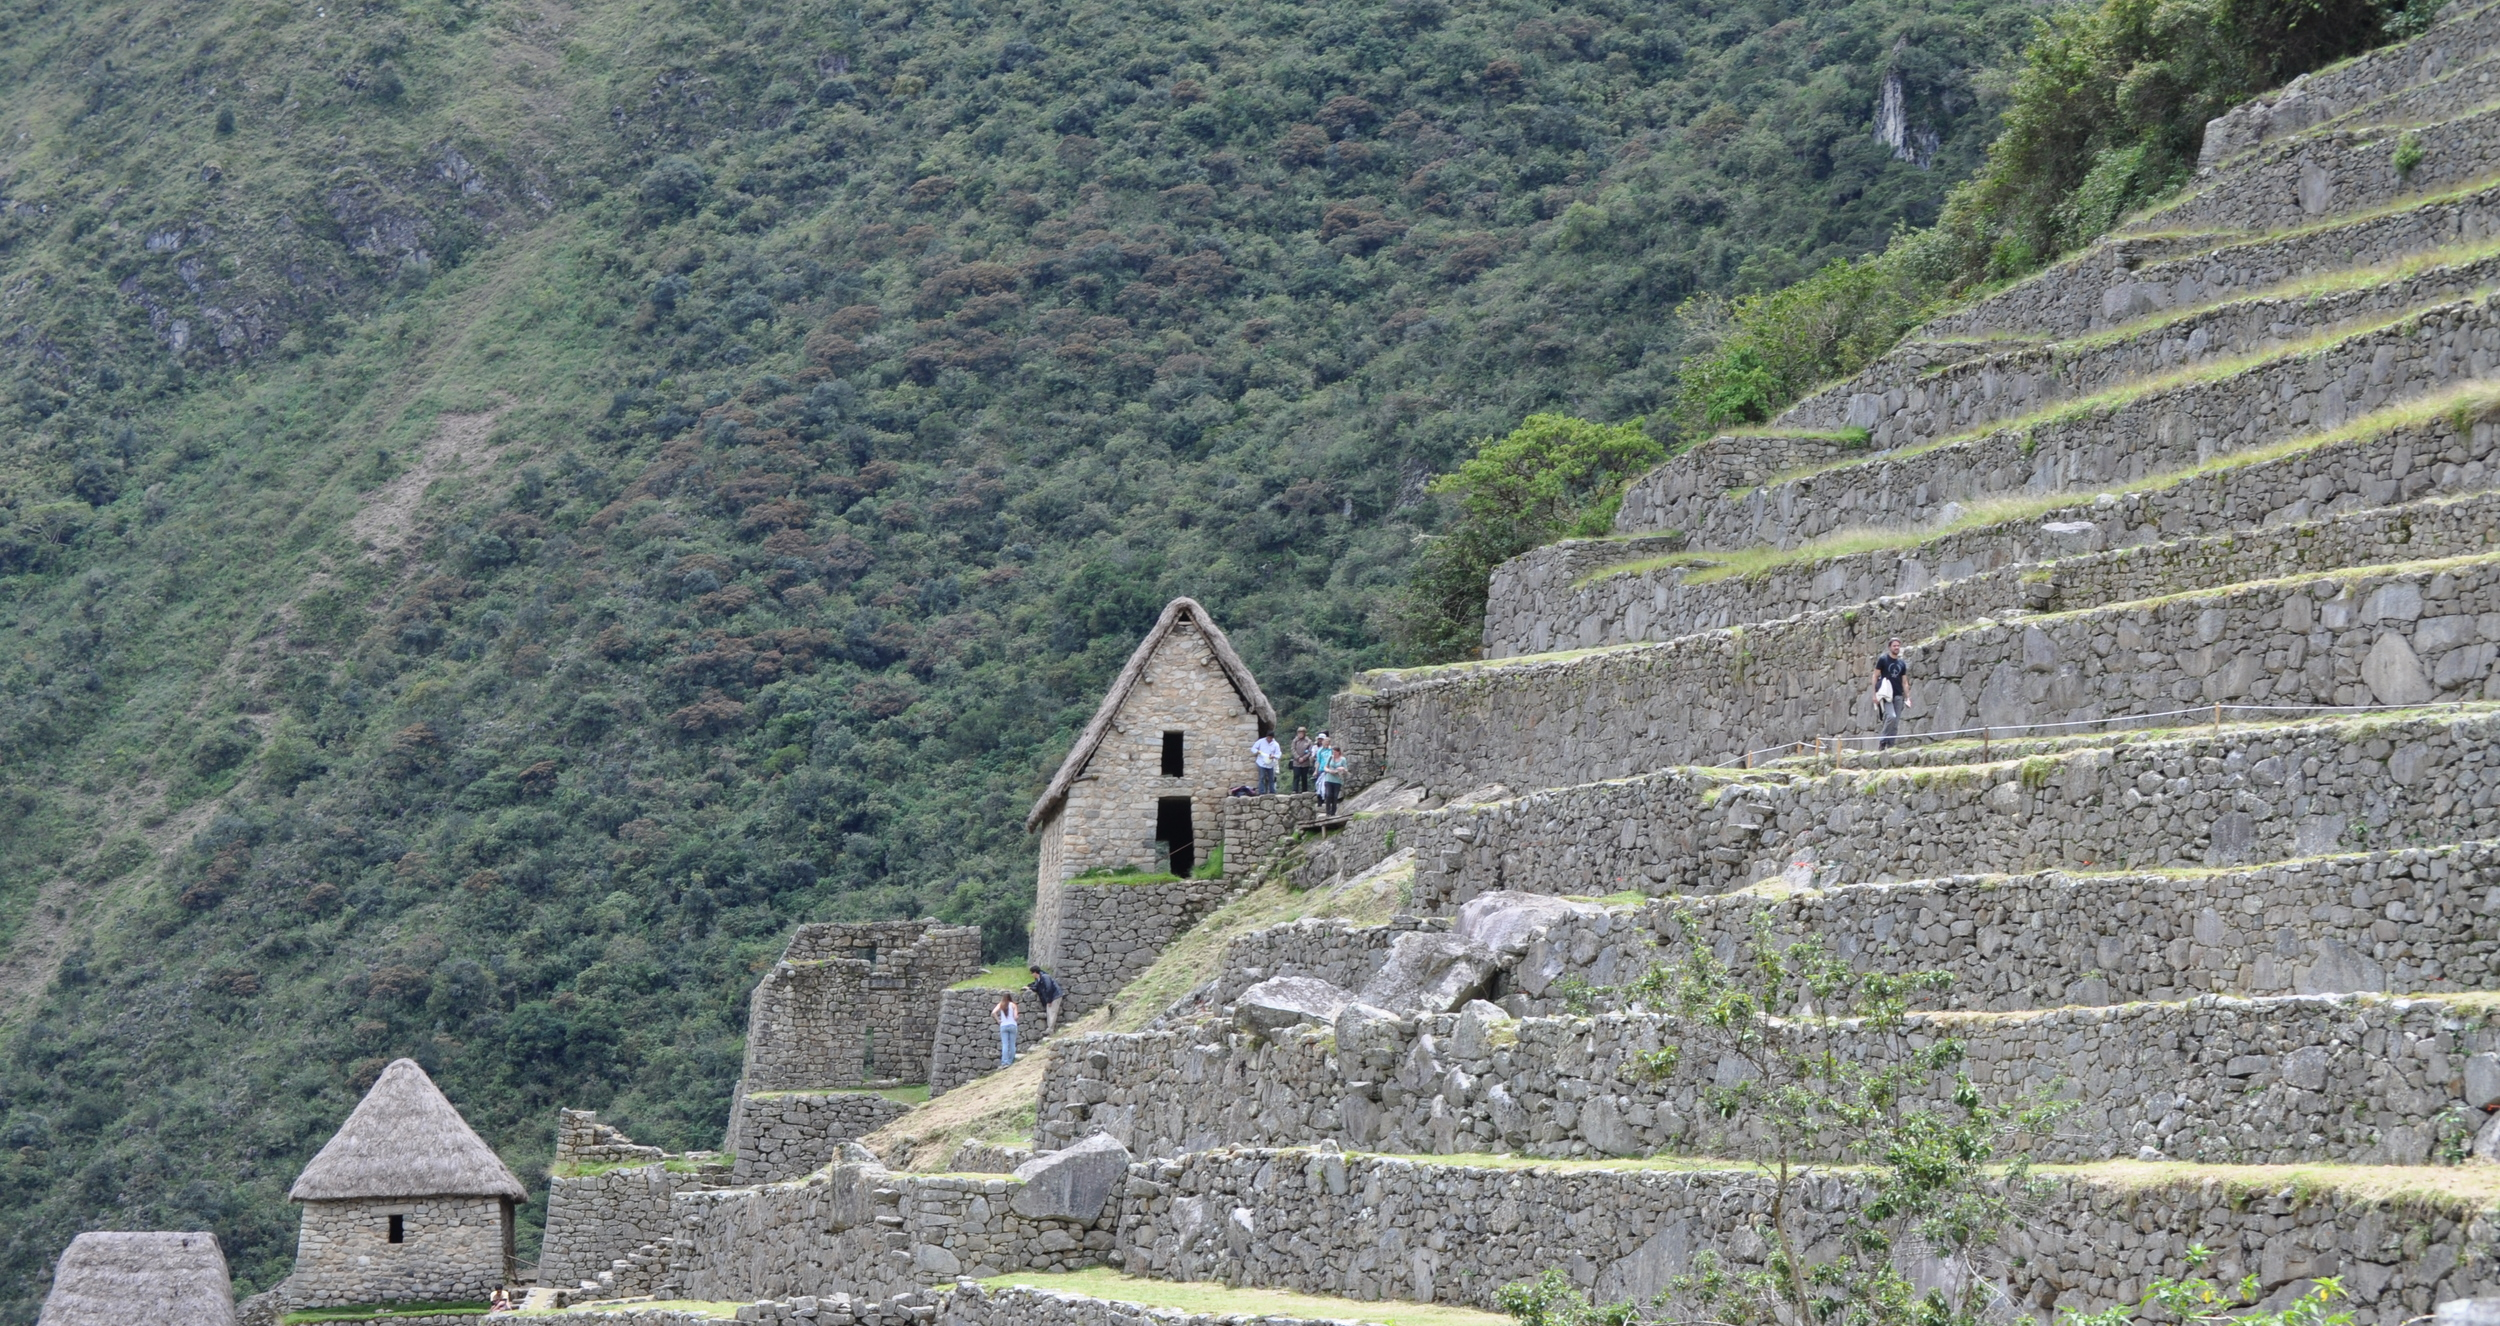 On July 7, 2007 Machu Picchu was declared as one of the Seven Wonders of the Modern World.  Photo: Pamy Rojas